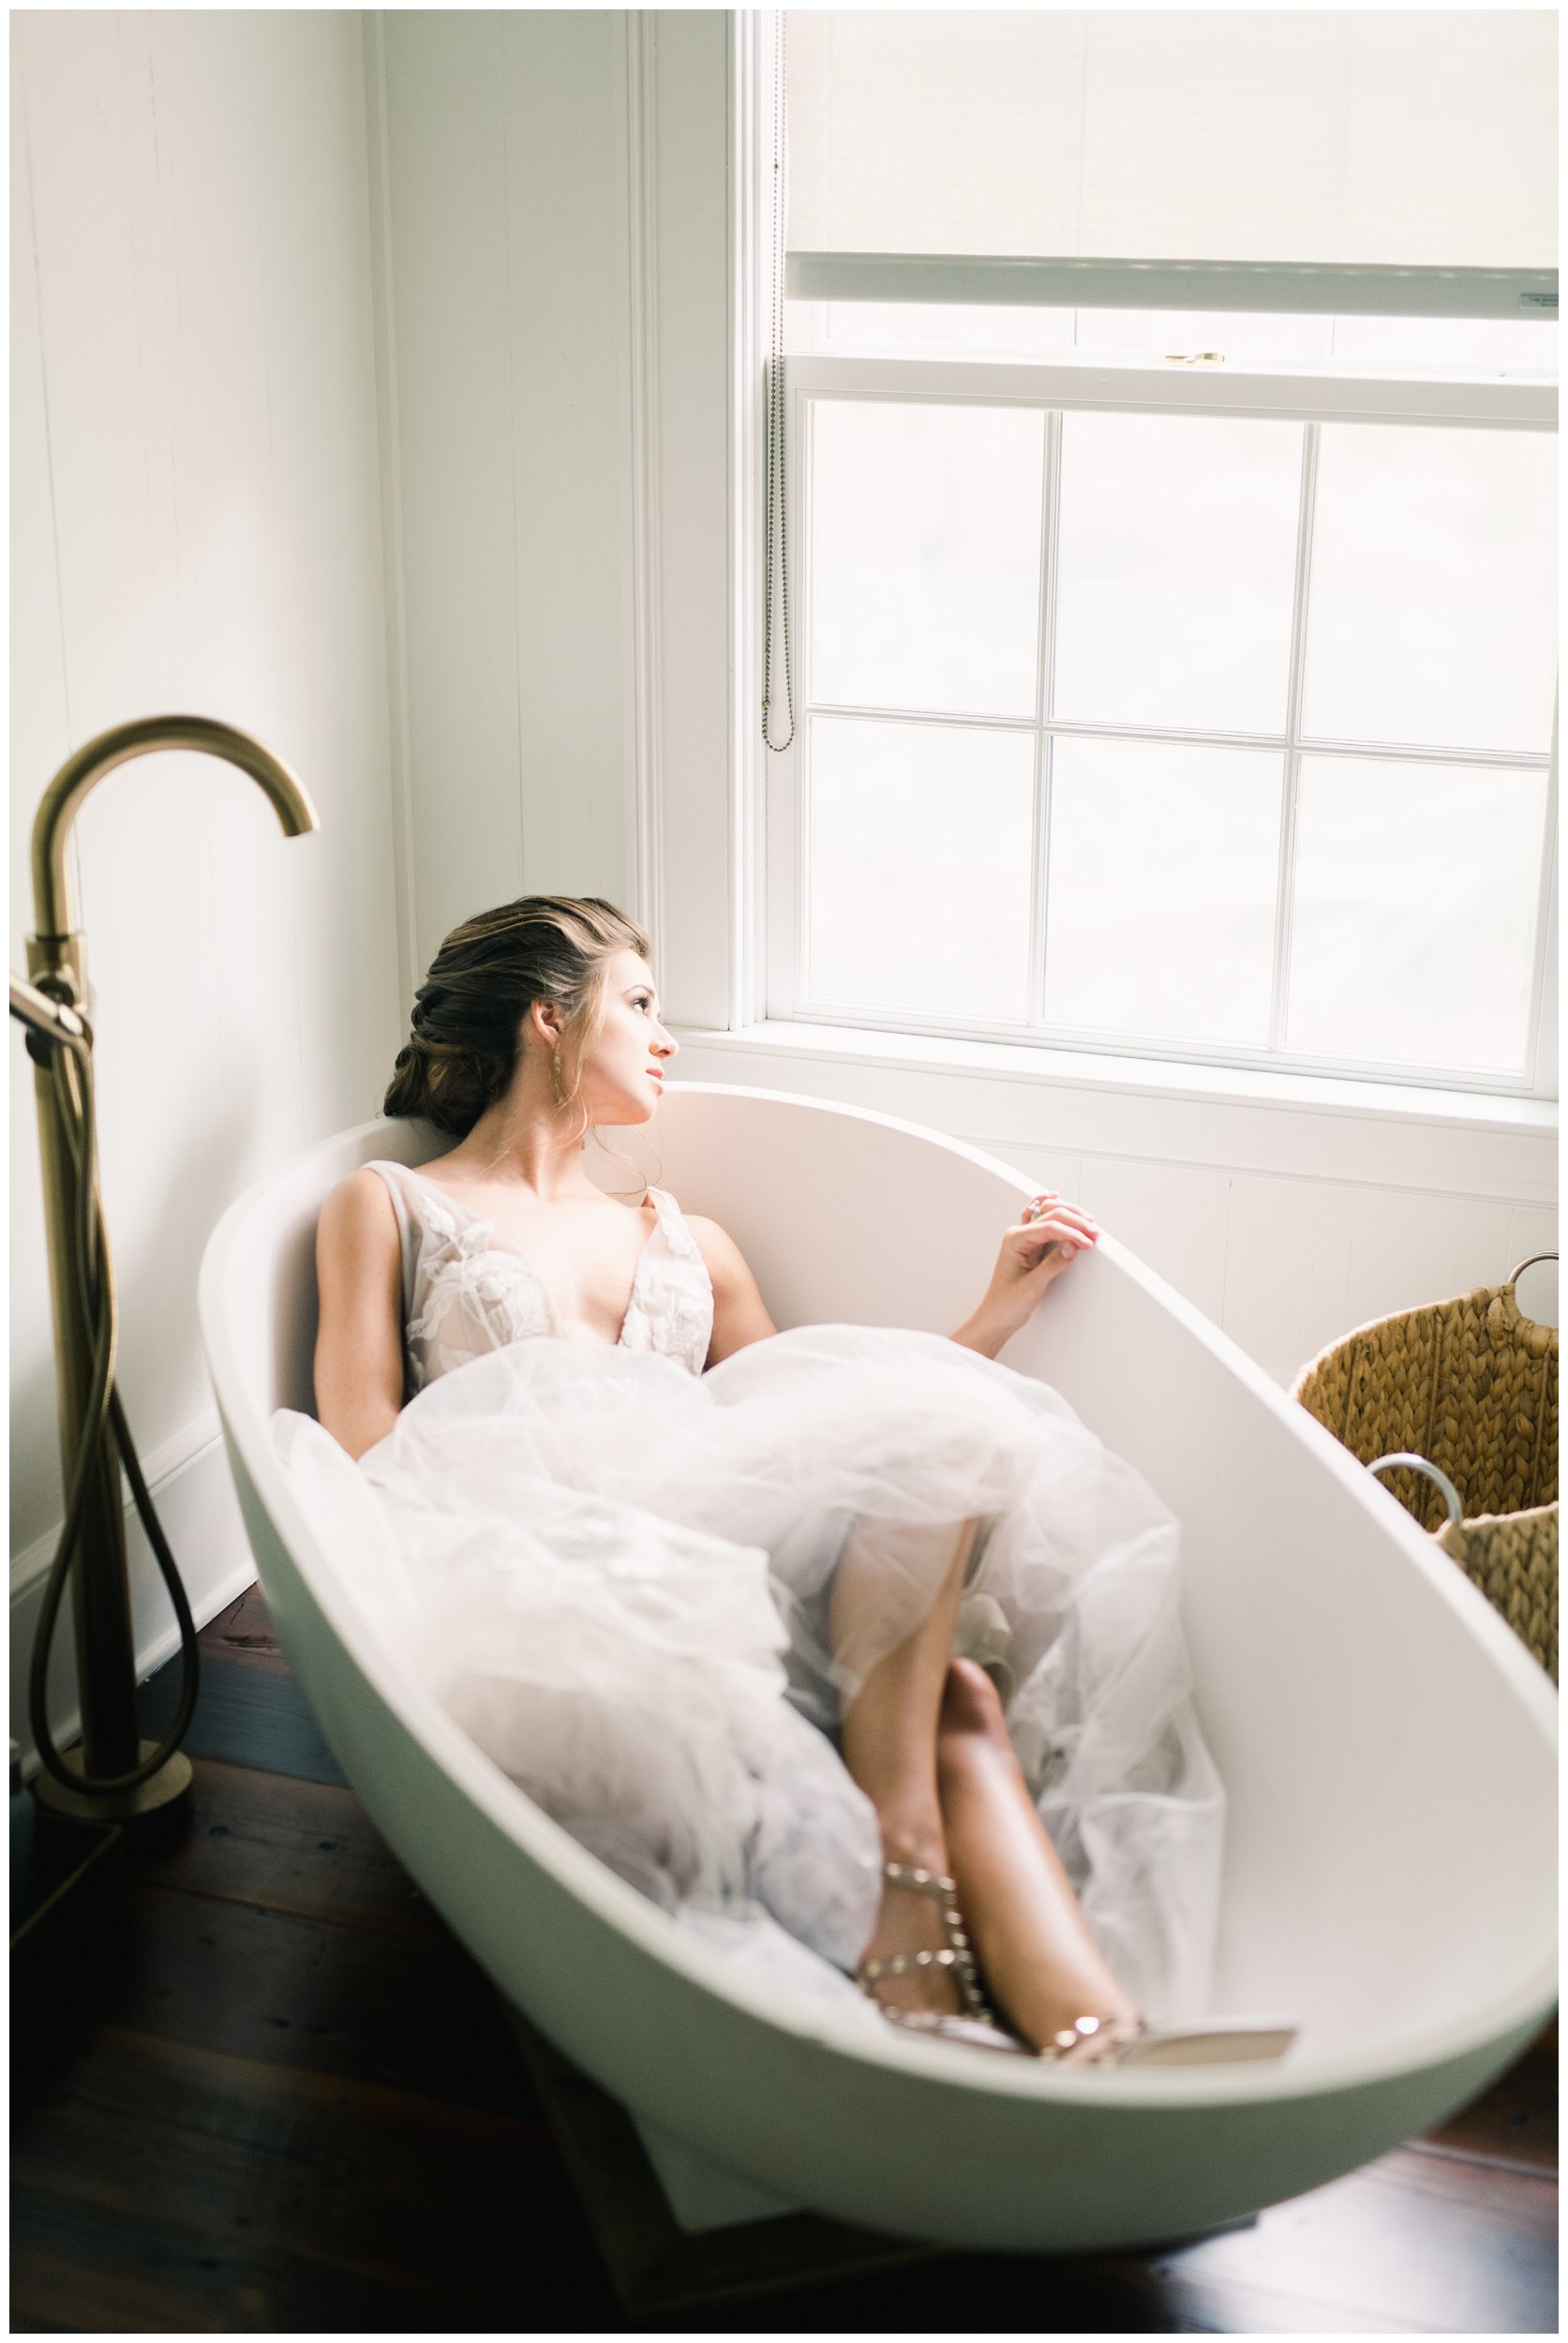 unique bridal portrait in vintage bathtub